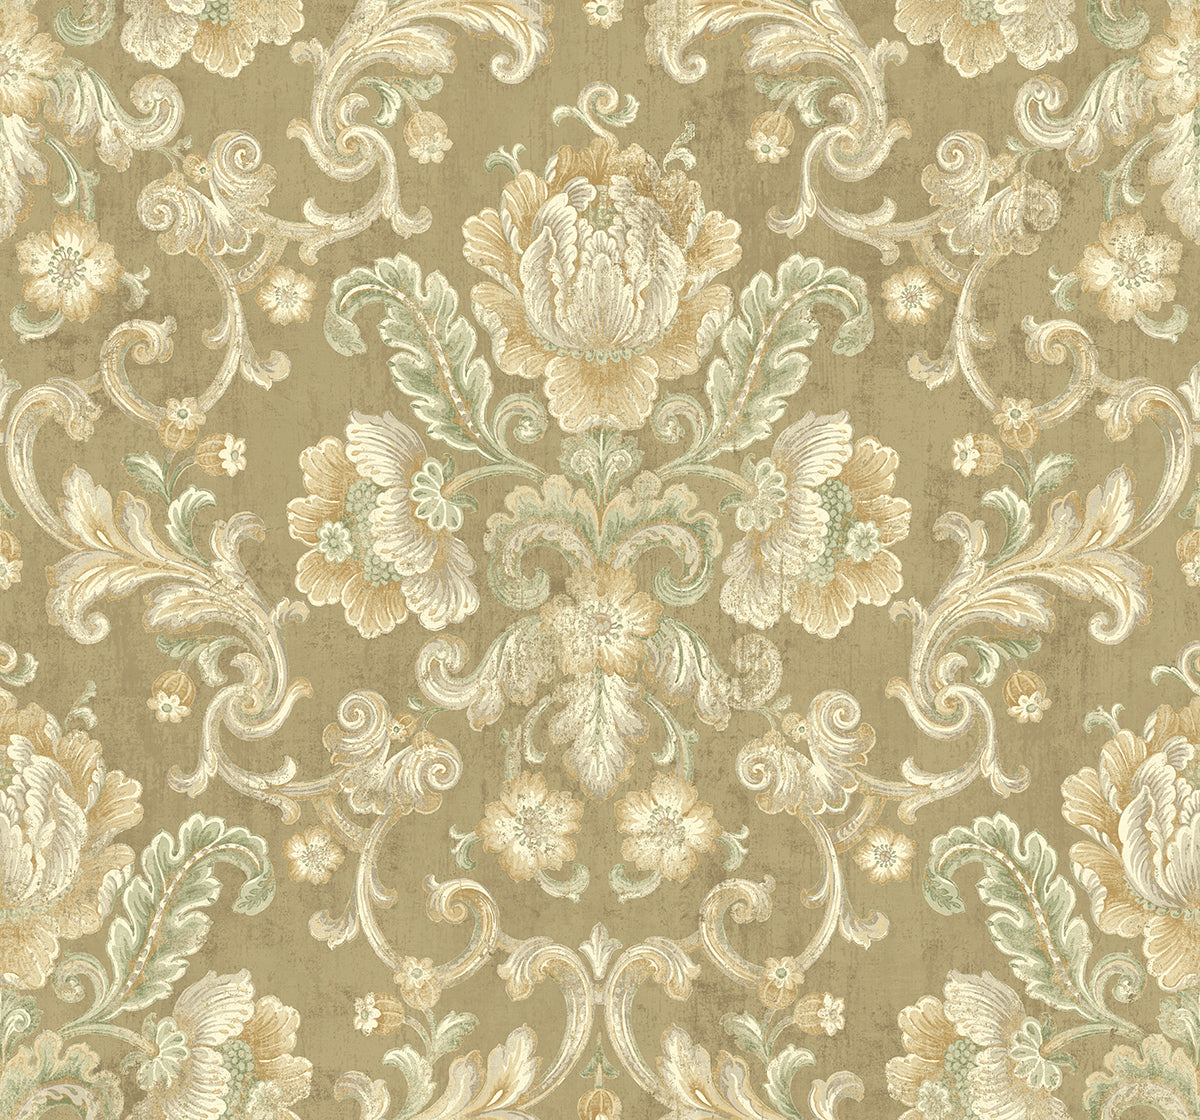 Vintage Cameo Wallpaper in Umber from the Vintage Home 2 Collection ...